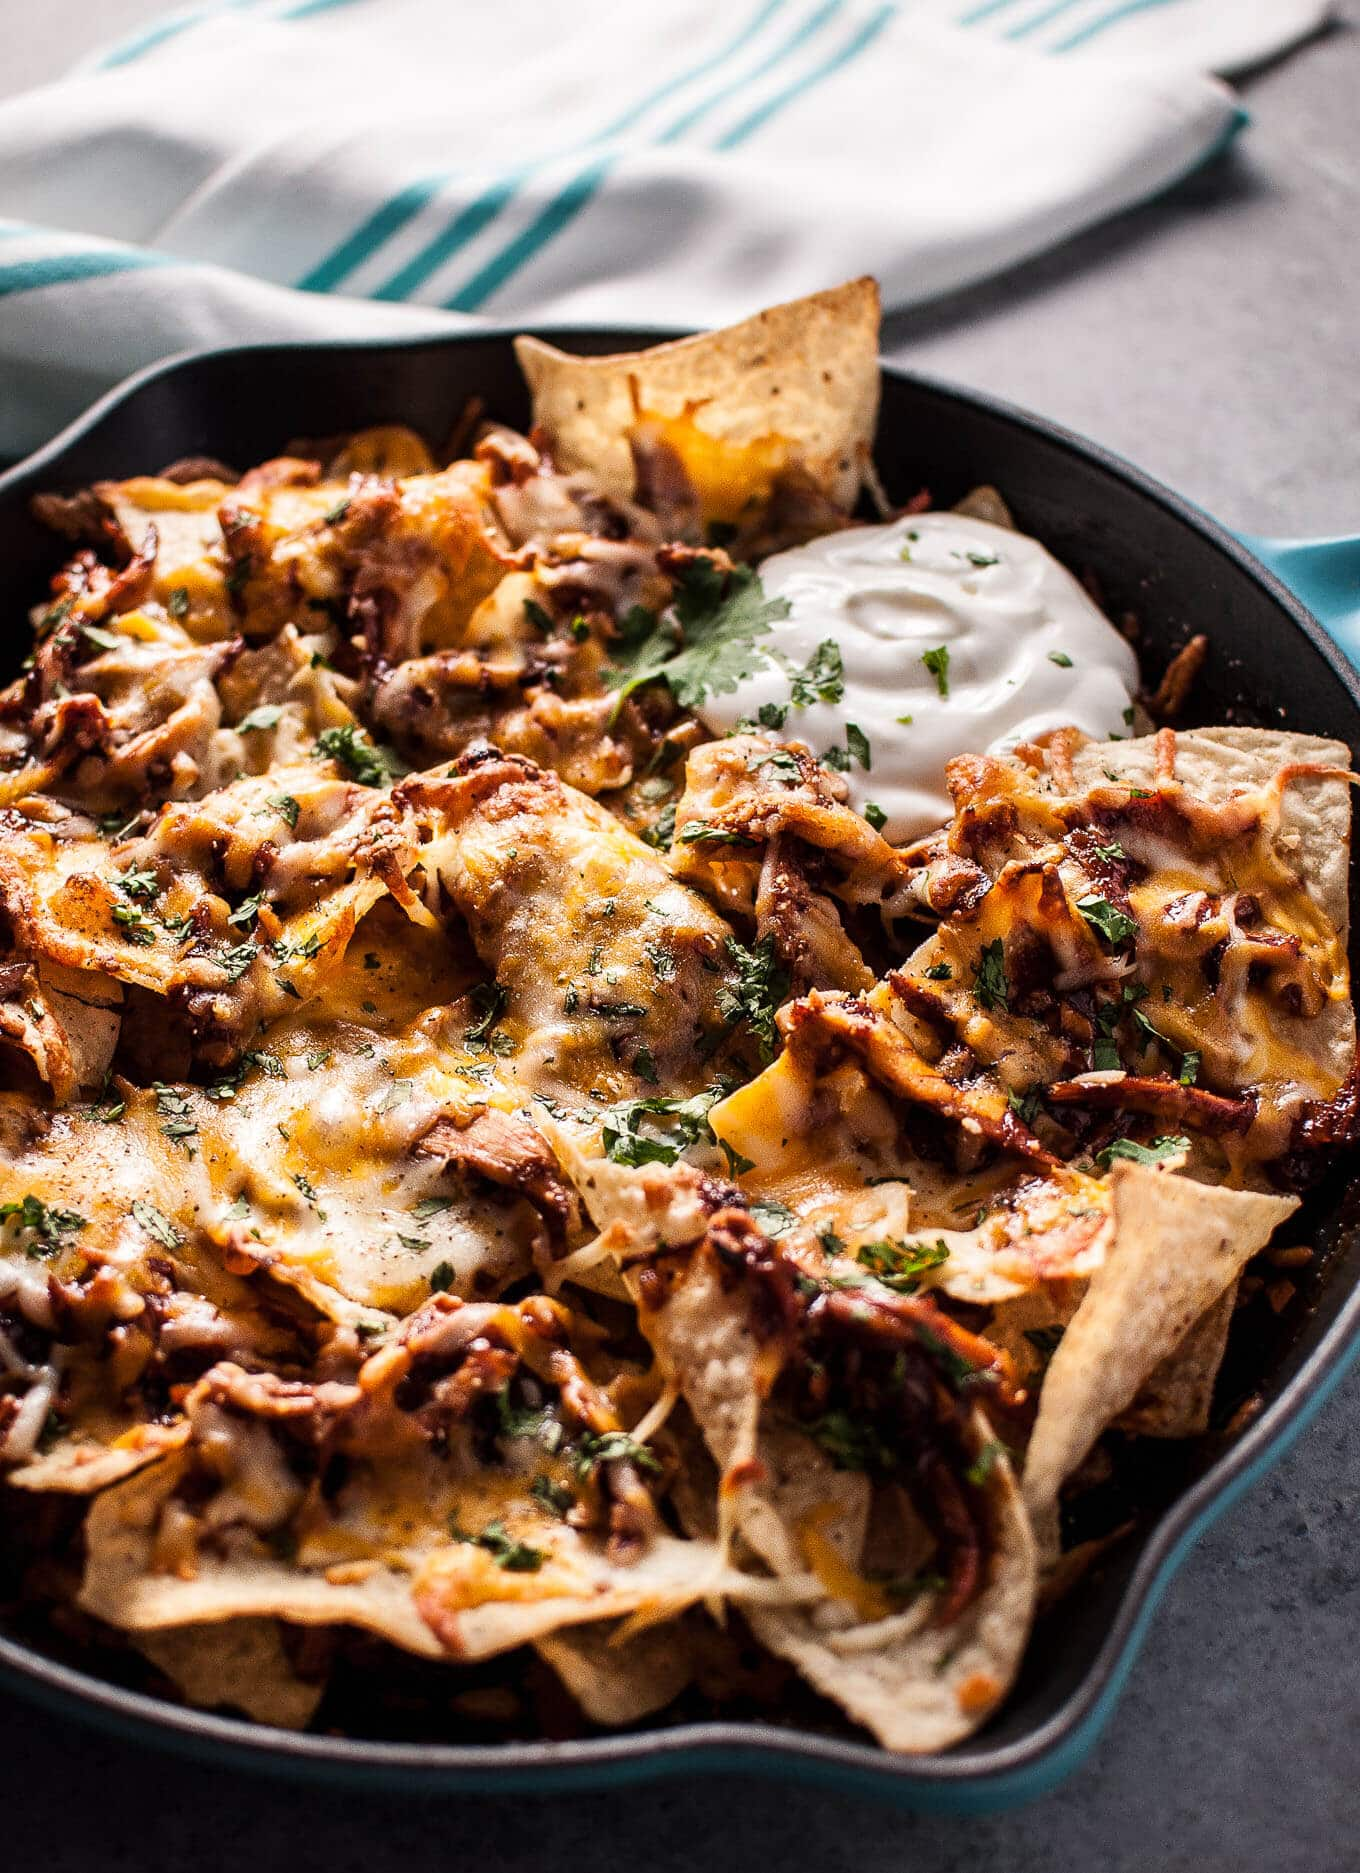 These BBQ chicken skillet nachos are fast, easy, and delicious! The perfect game-day comfort food appetizer. Ready in only 25 minutes!